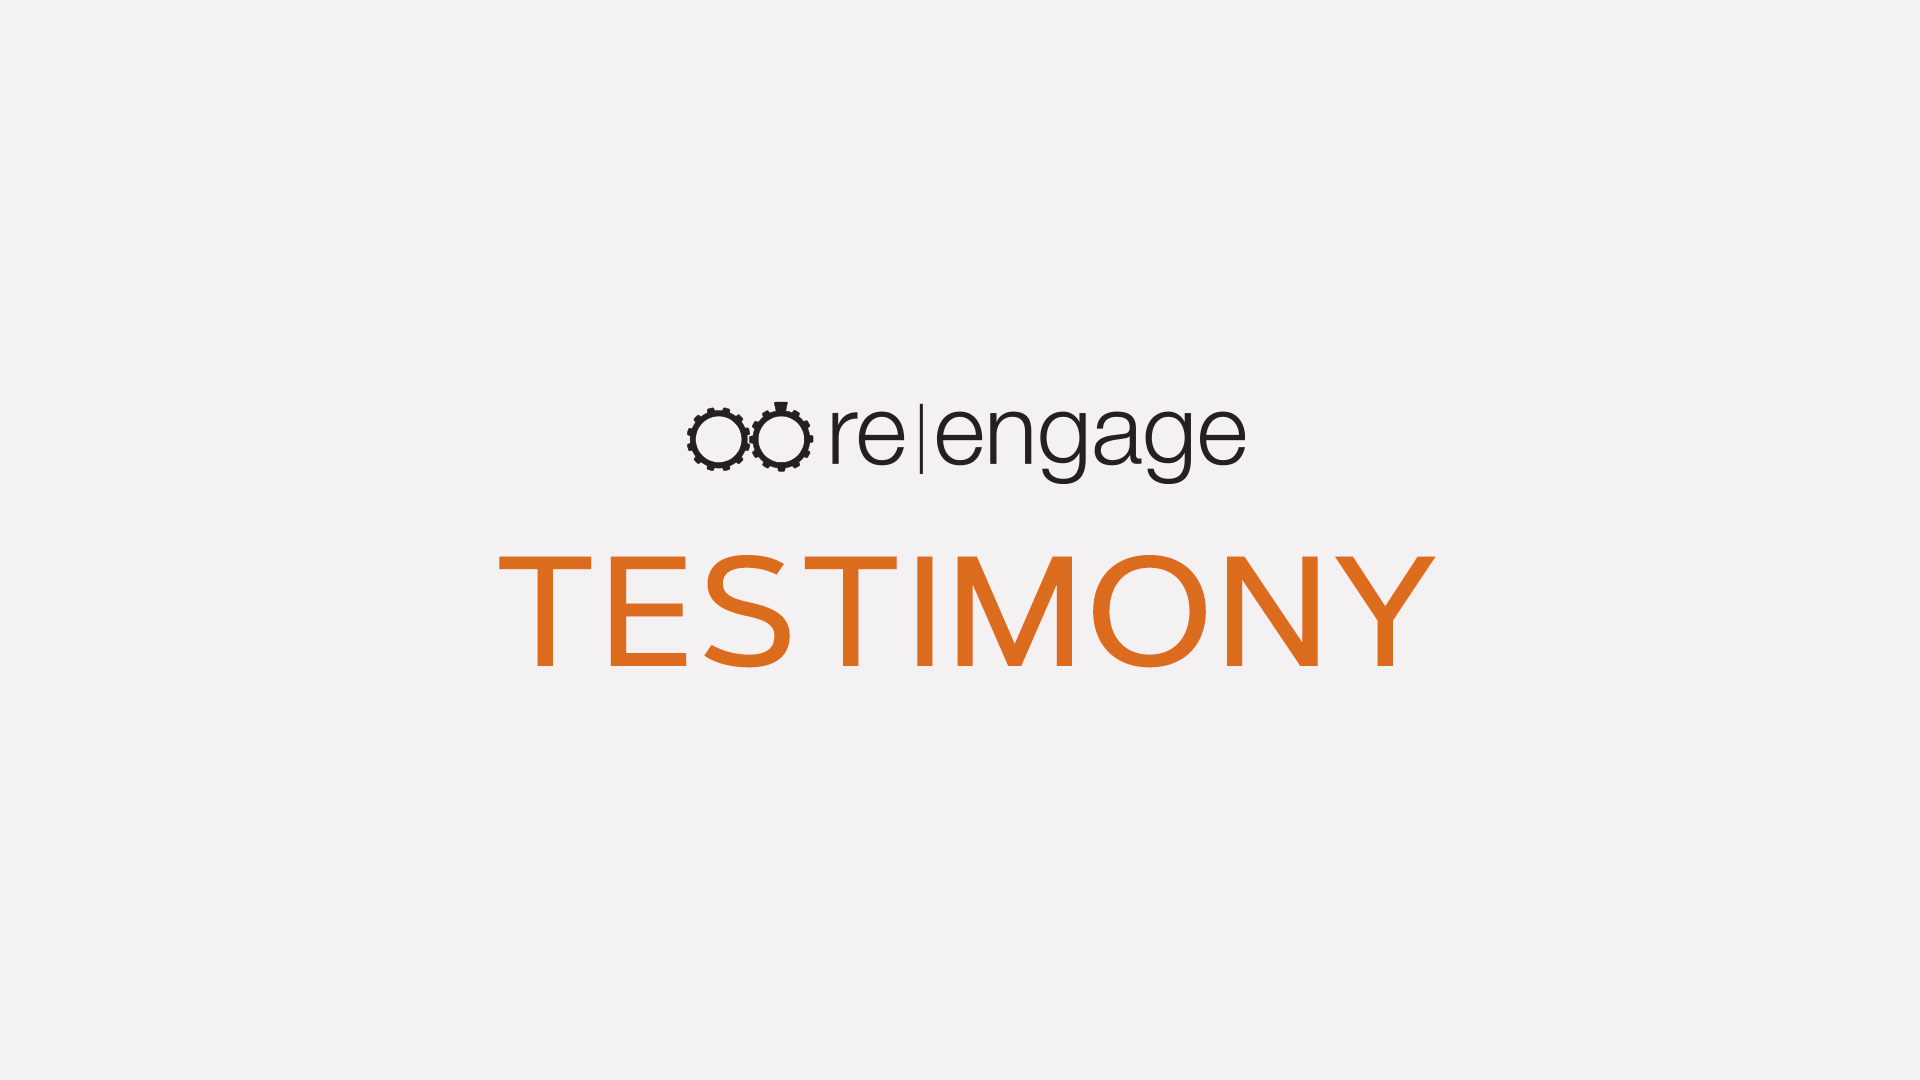 Testimony - Kevin and Kelli Mainz